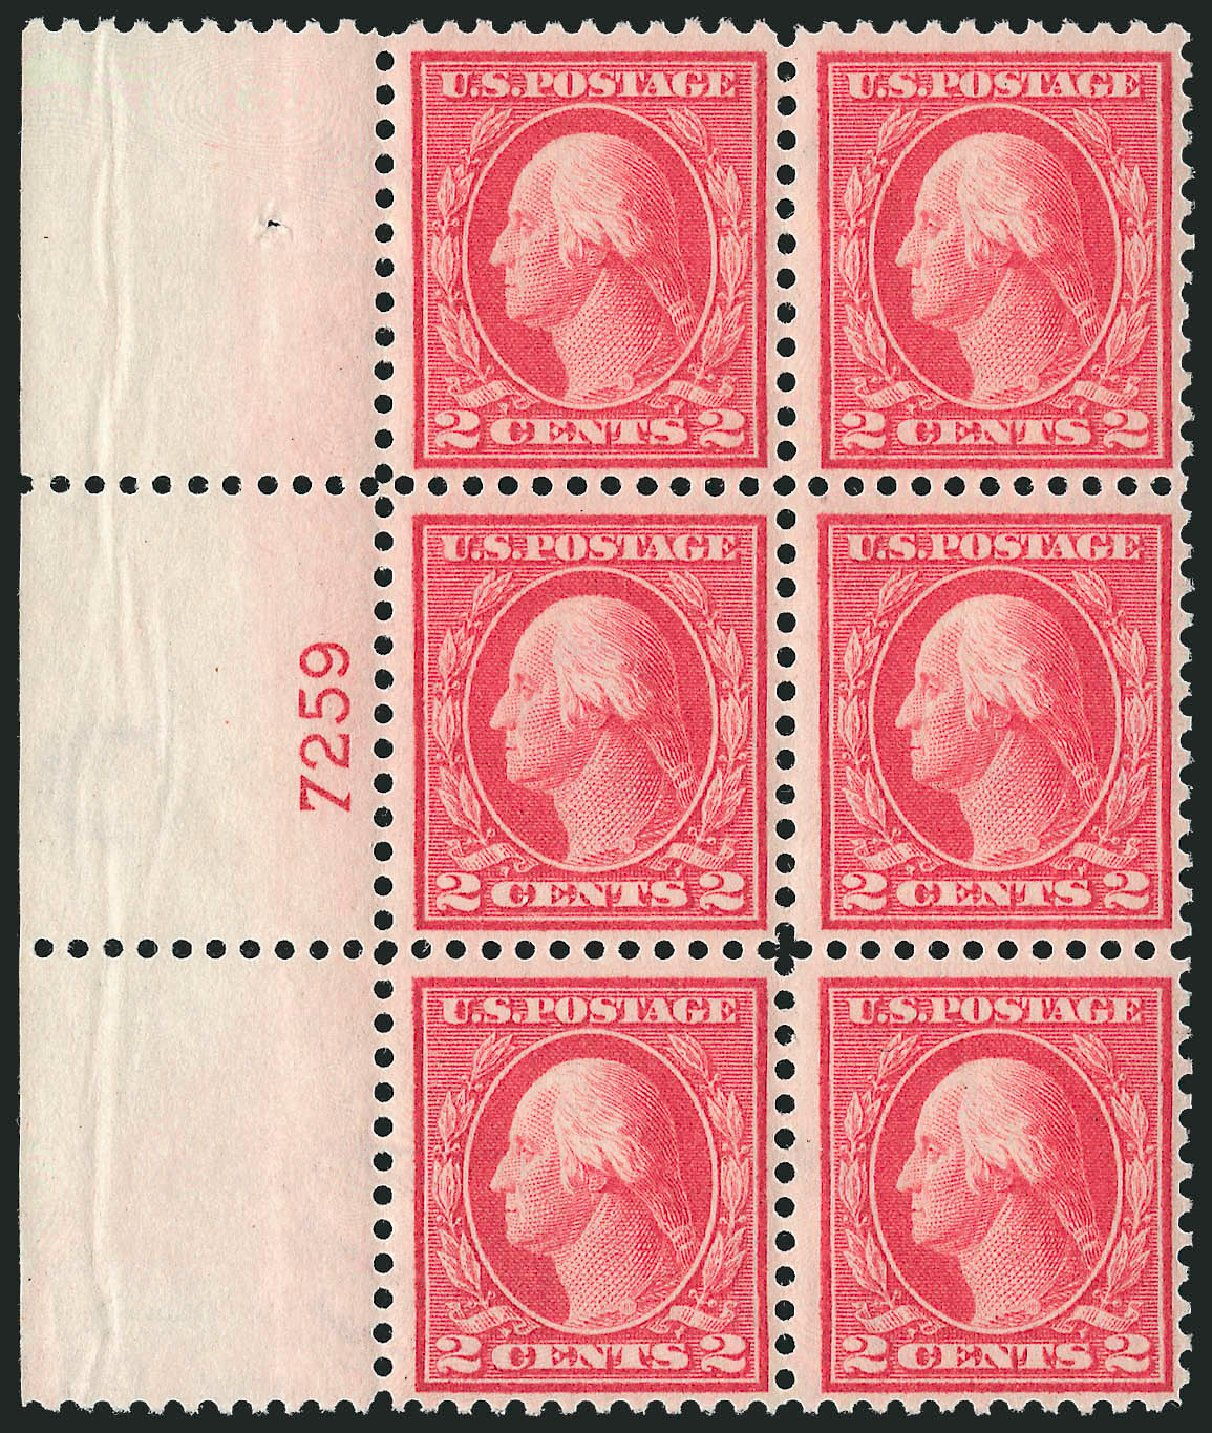 US Stamp Prices Scott Catalog 461: 2c 1915 Washington Perf 11. Robert Siegel Auction Galleries, Apr 2015, Sale 1096, Lot 708